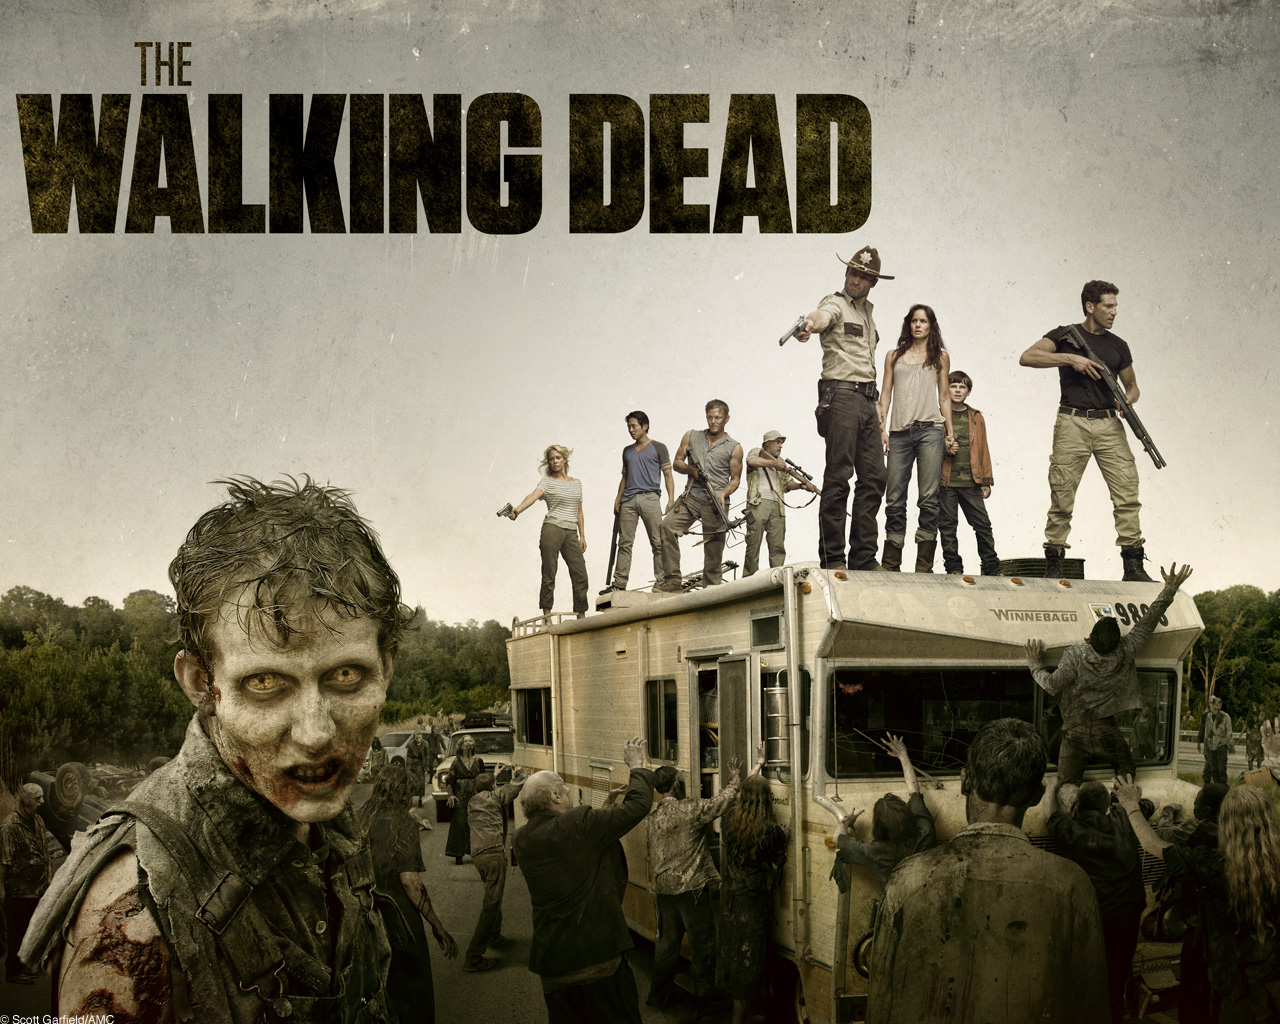 http://thepoliticalscienceclub.com/wp-content/uploads/2015/05/walking-dead-season-1.jpg